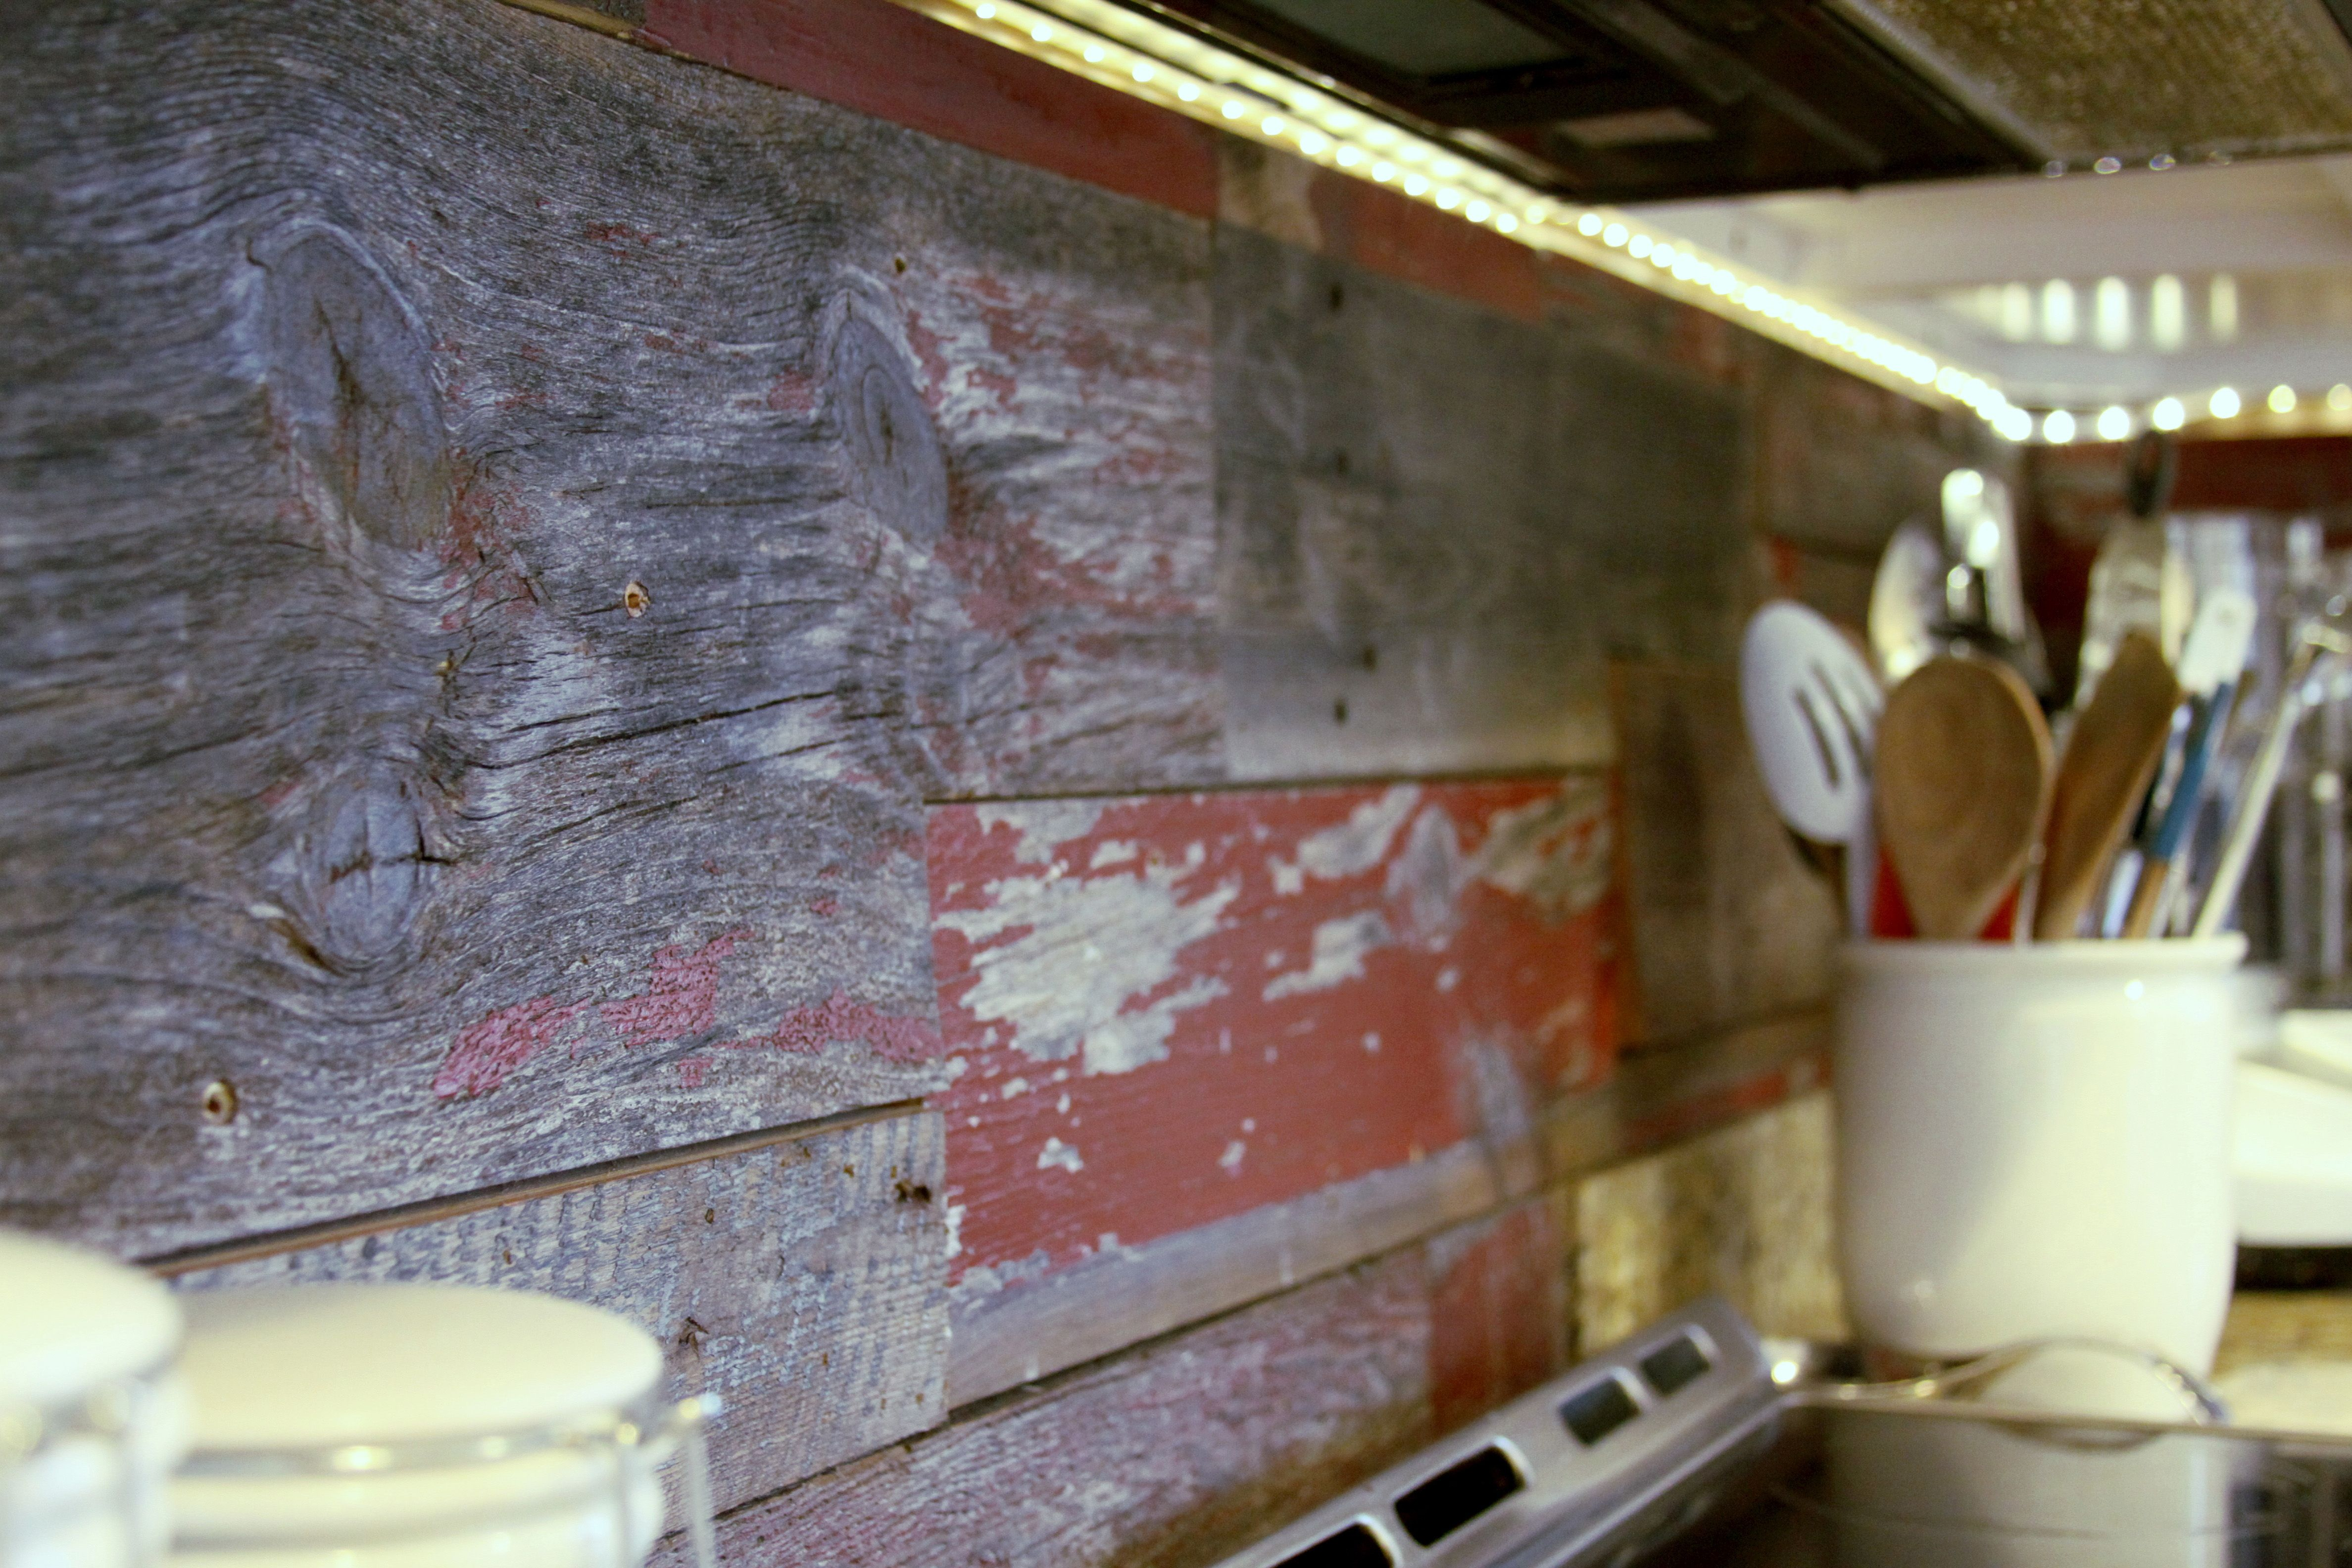 13 Removable Kitchen Backsplash Ideas on ugly artwork, ugly cross decorations, ugly granite, ugly area rugs, ugly basement, ugly kitchens, ugly electrical, ugly bath, ugly farm sink, ugly ovens, ugly countertops,